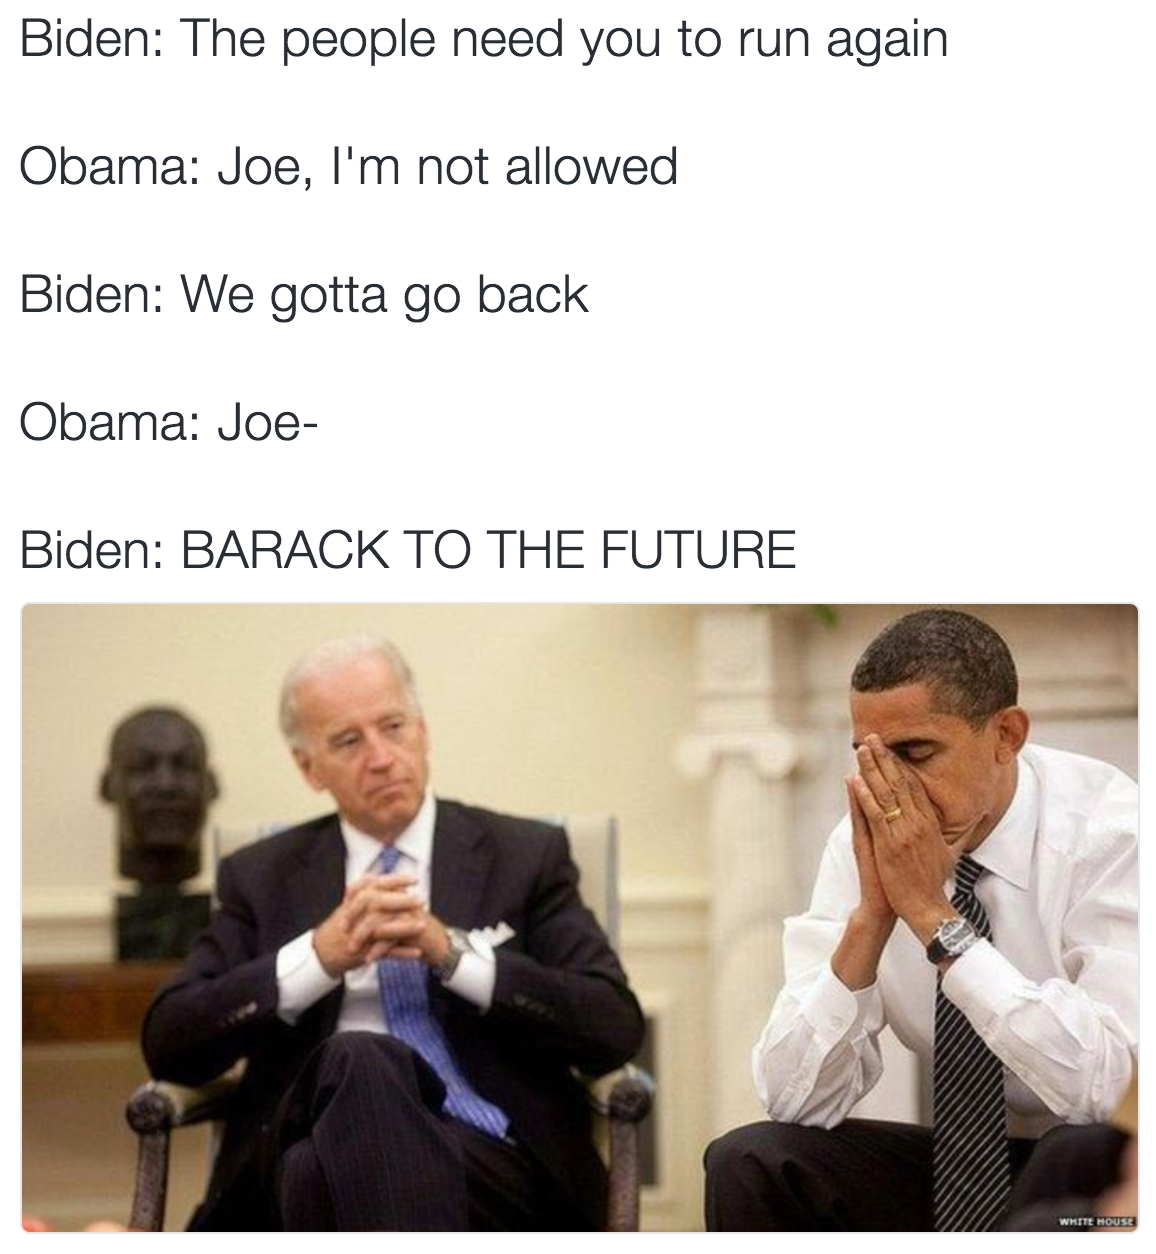 the people need you to run again, jo i'm not allowed, we gotta go back, joe, barack to the future